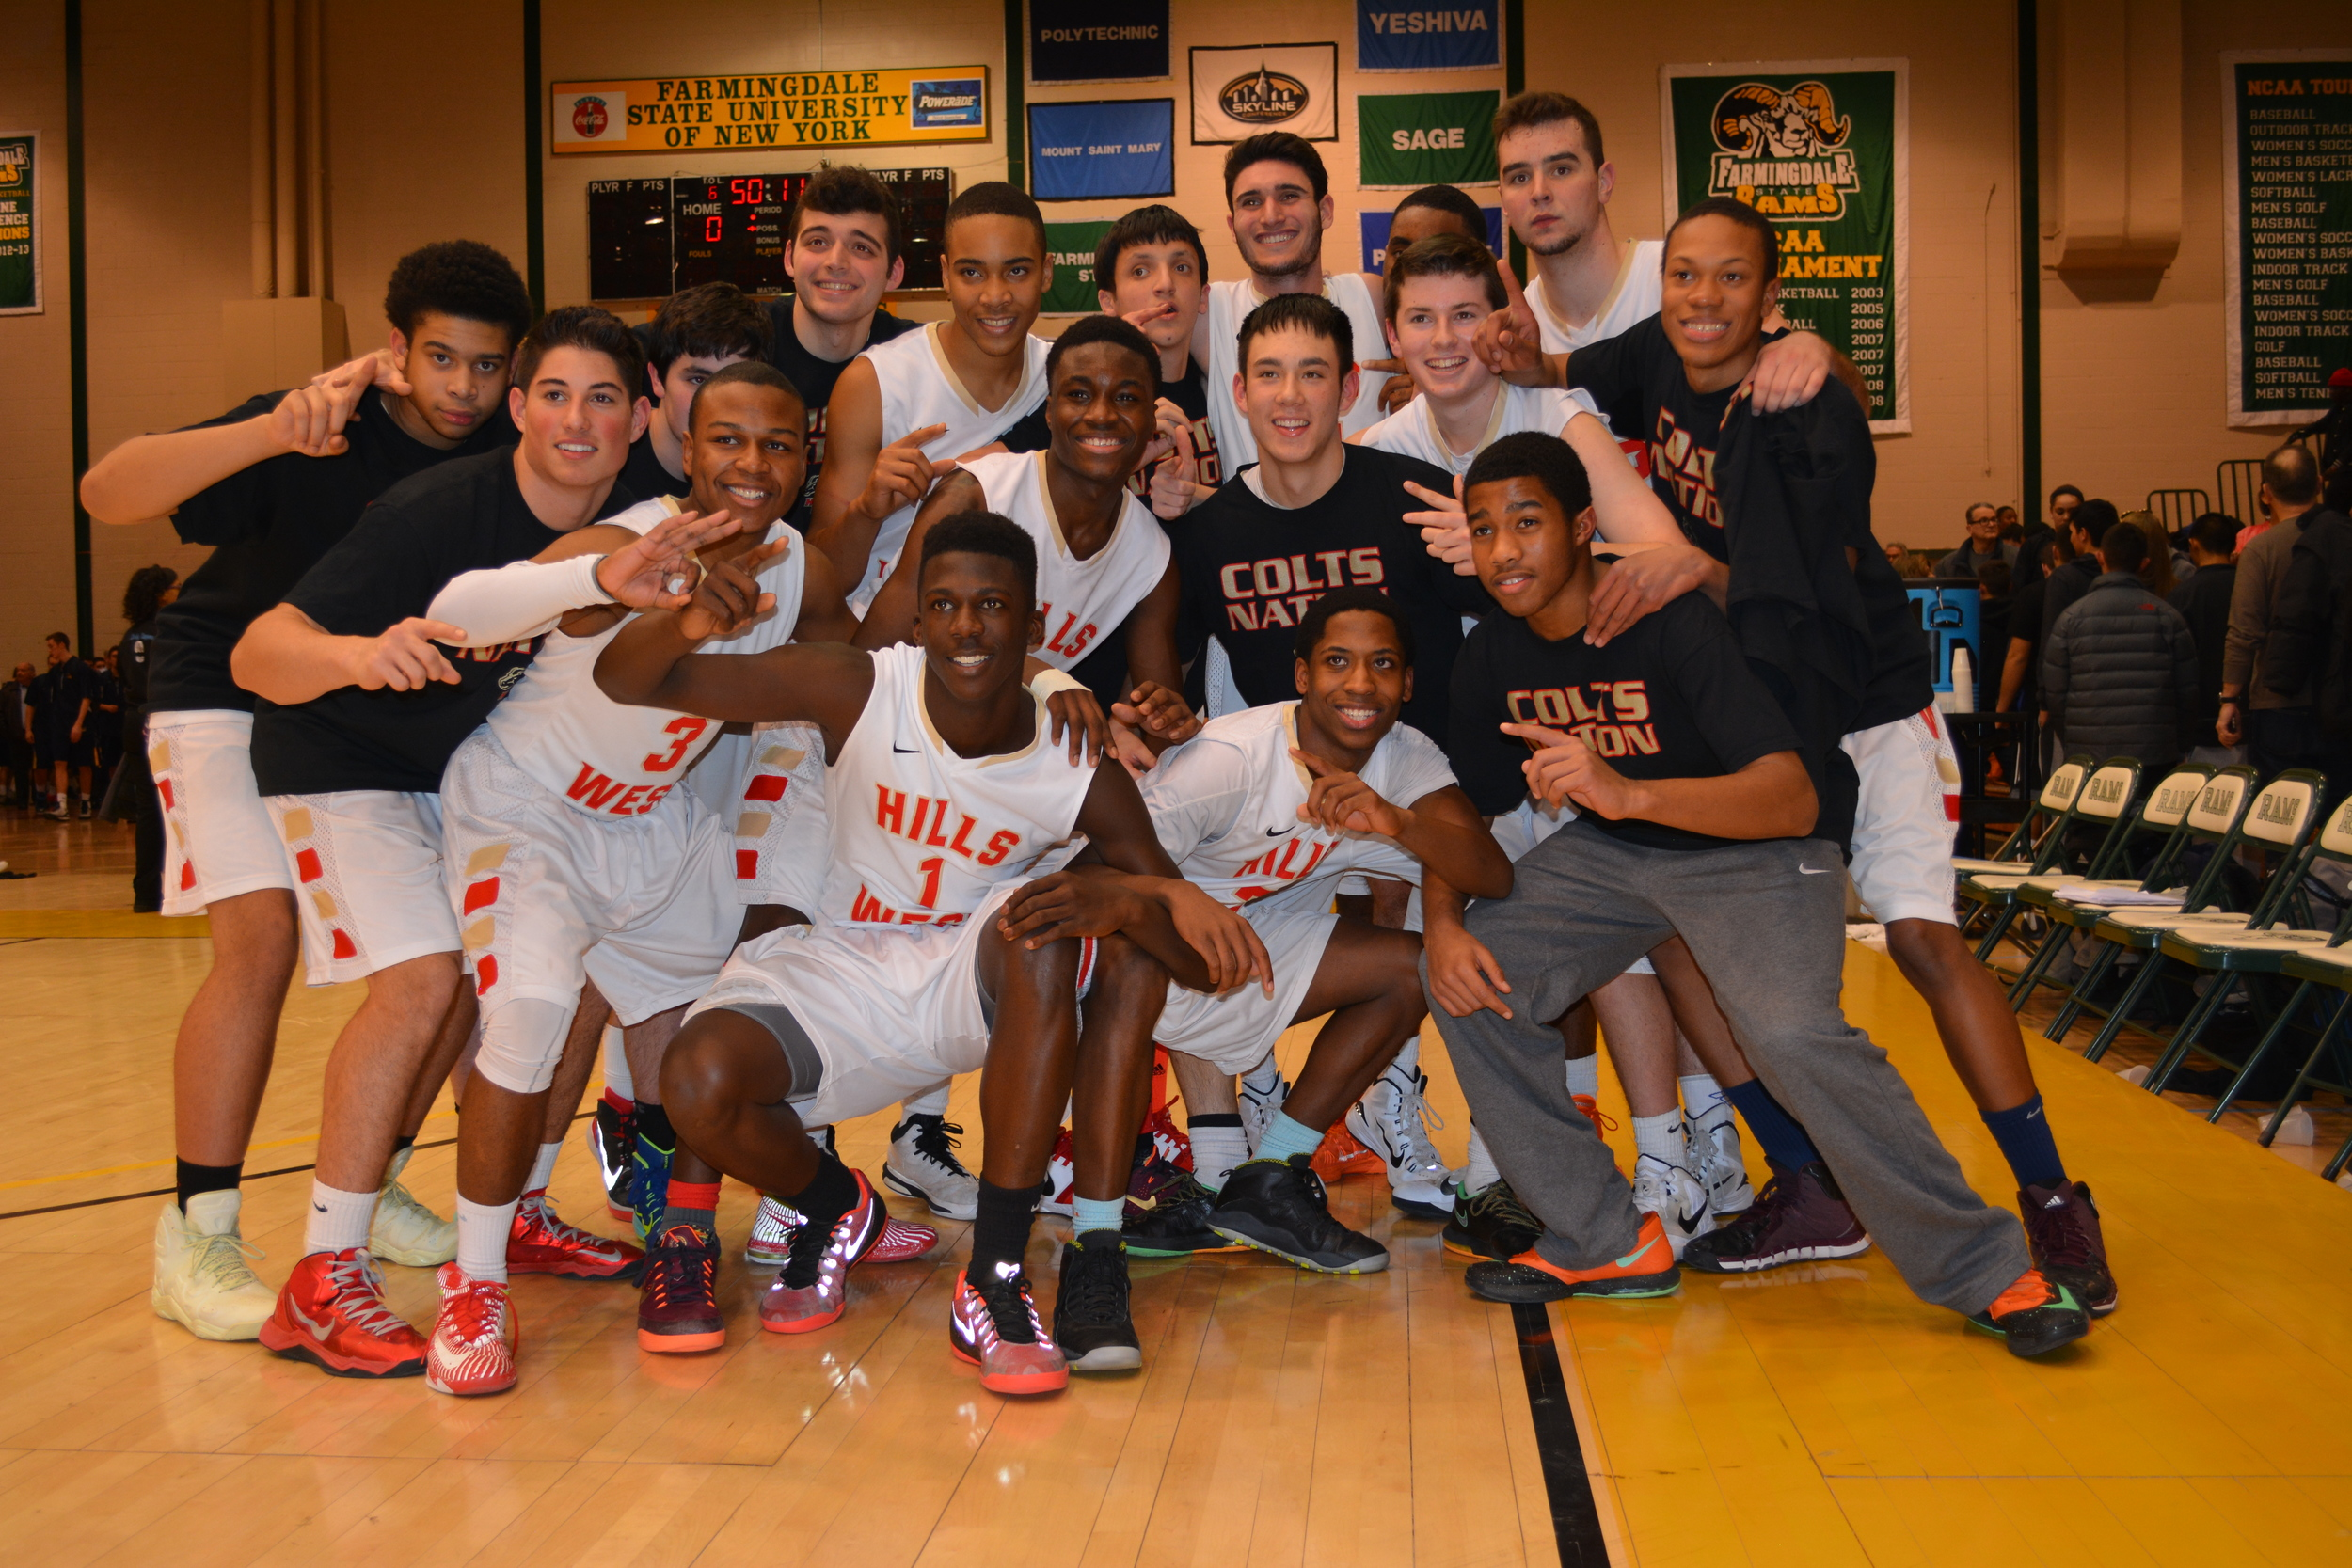 After advancing to the Suffolk championship game Wednesday night, the Colts pose for a picture.